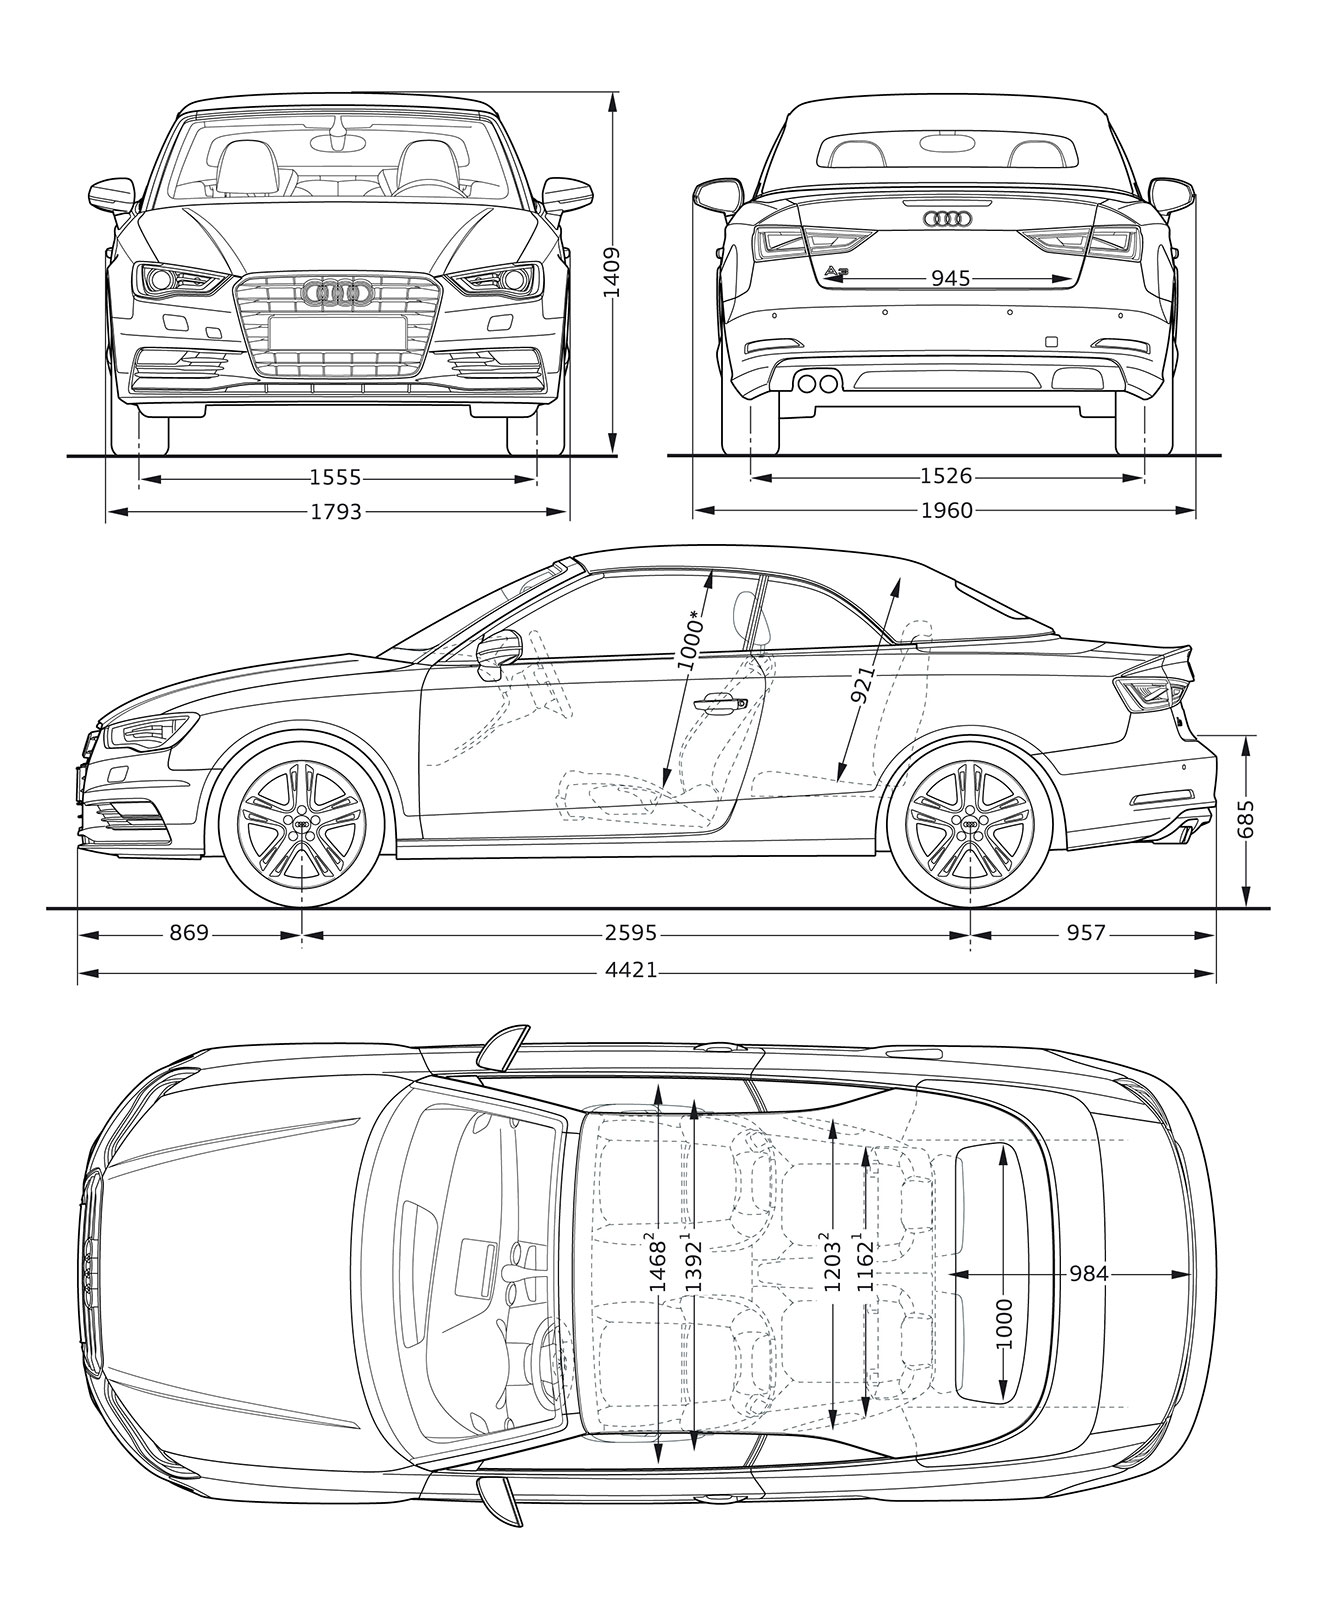 Audi A3 Cabriolet - Dimensions Blueprint - Car Body Design